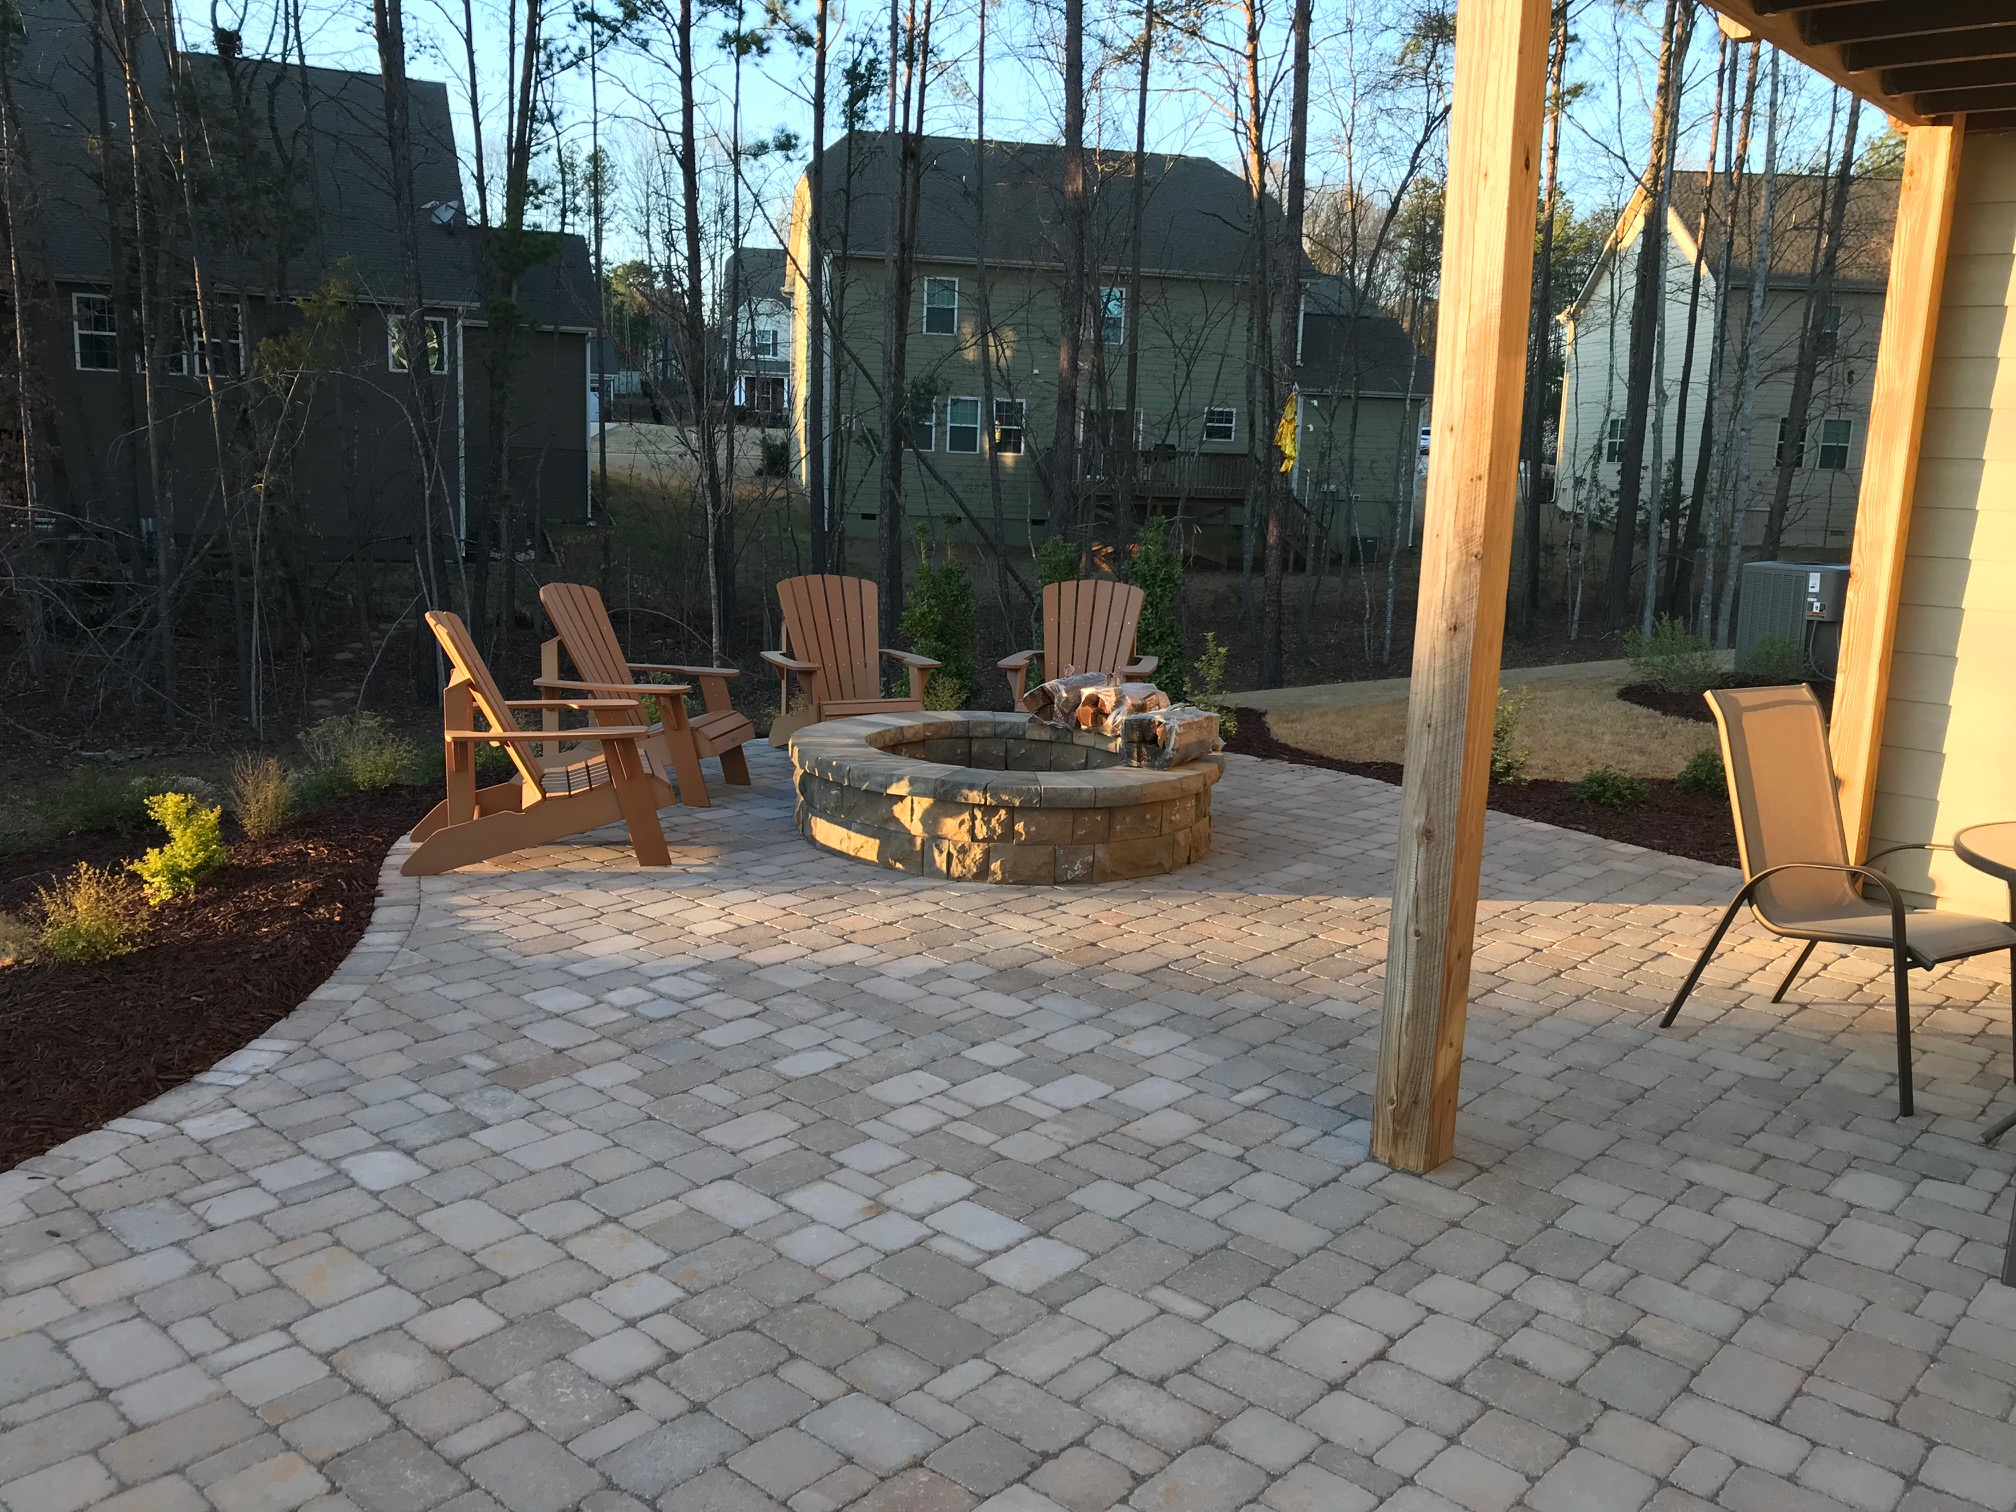 Captivating A Belgard Paver Patio, Fire Pit And Landscaping